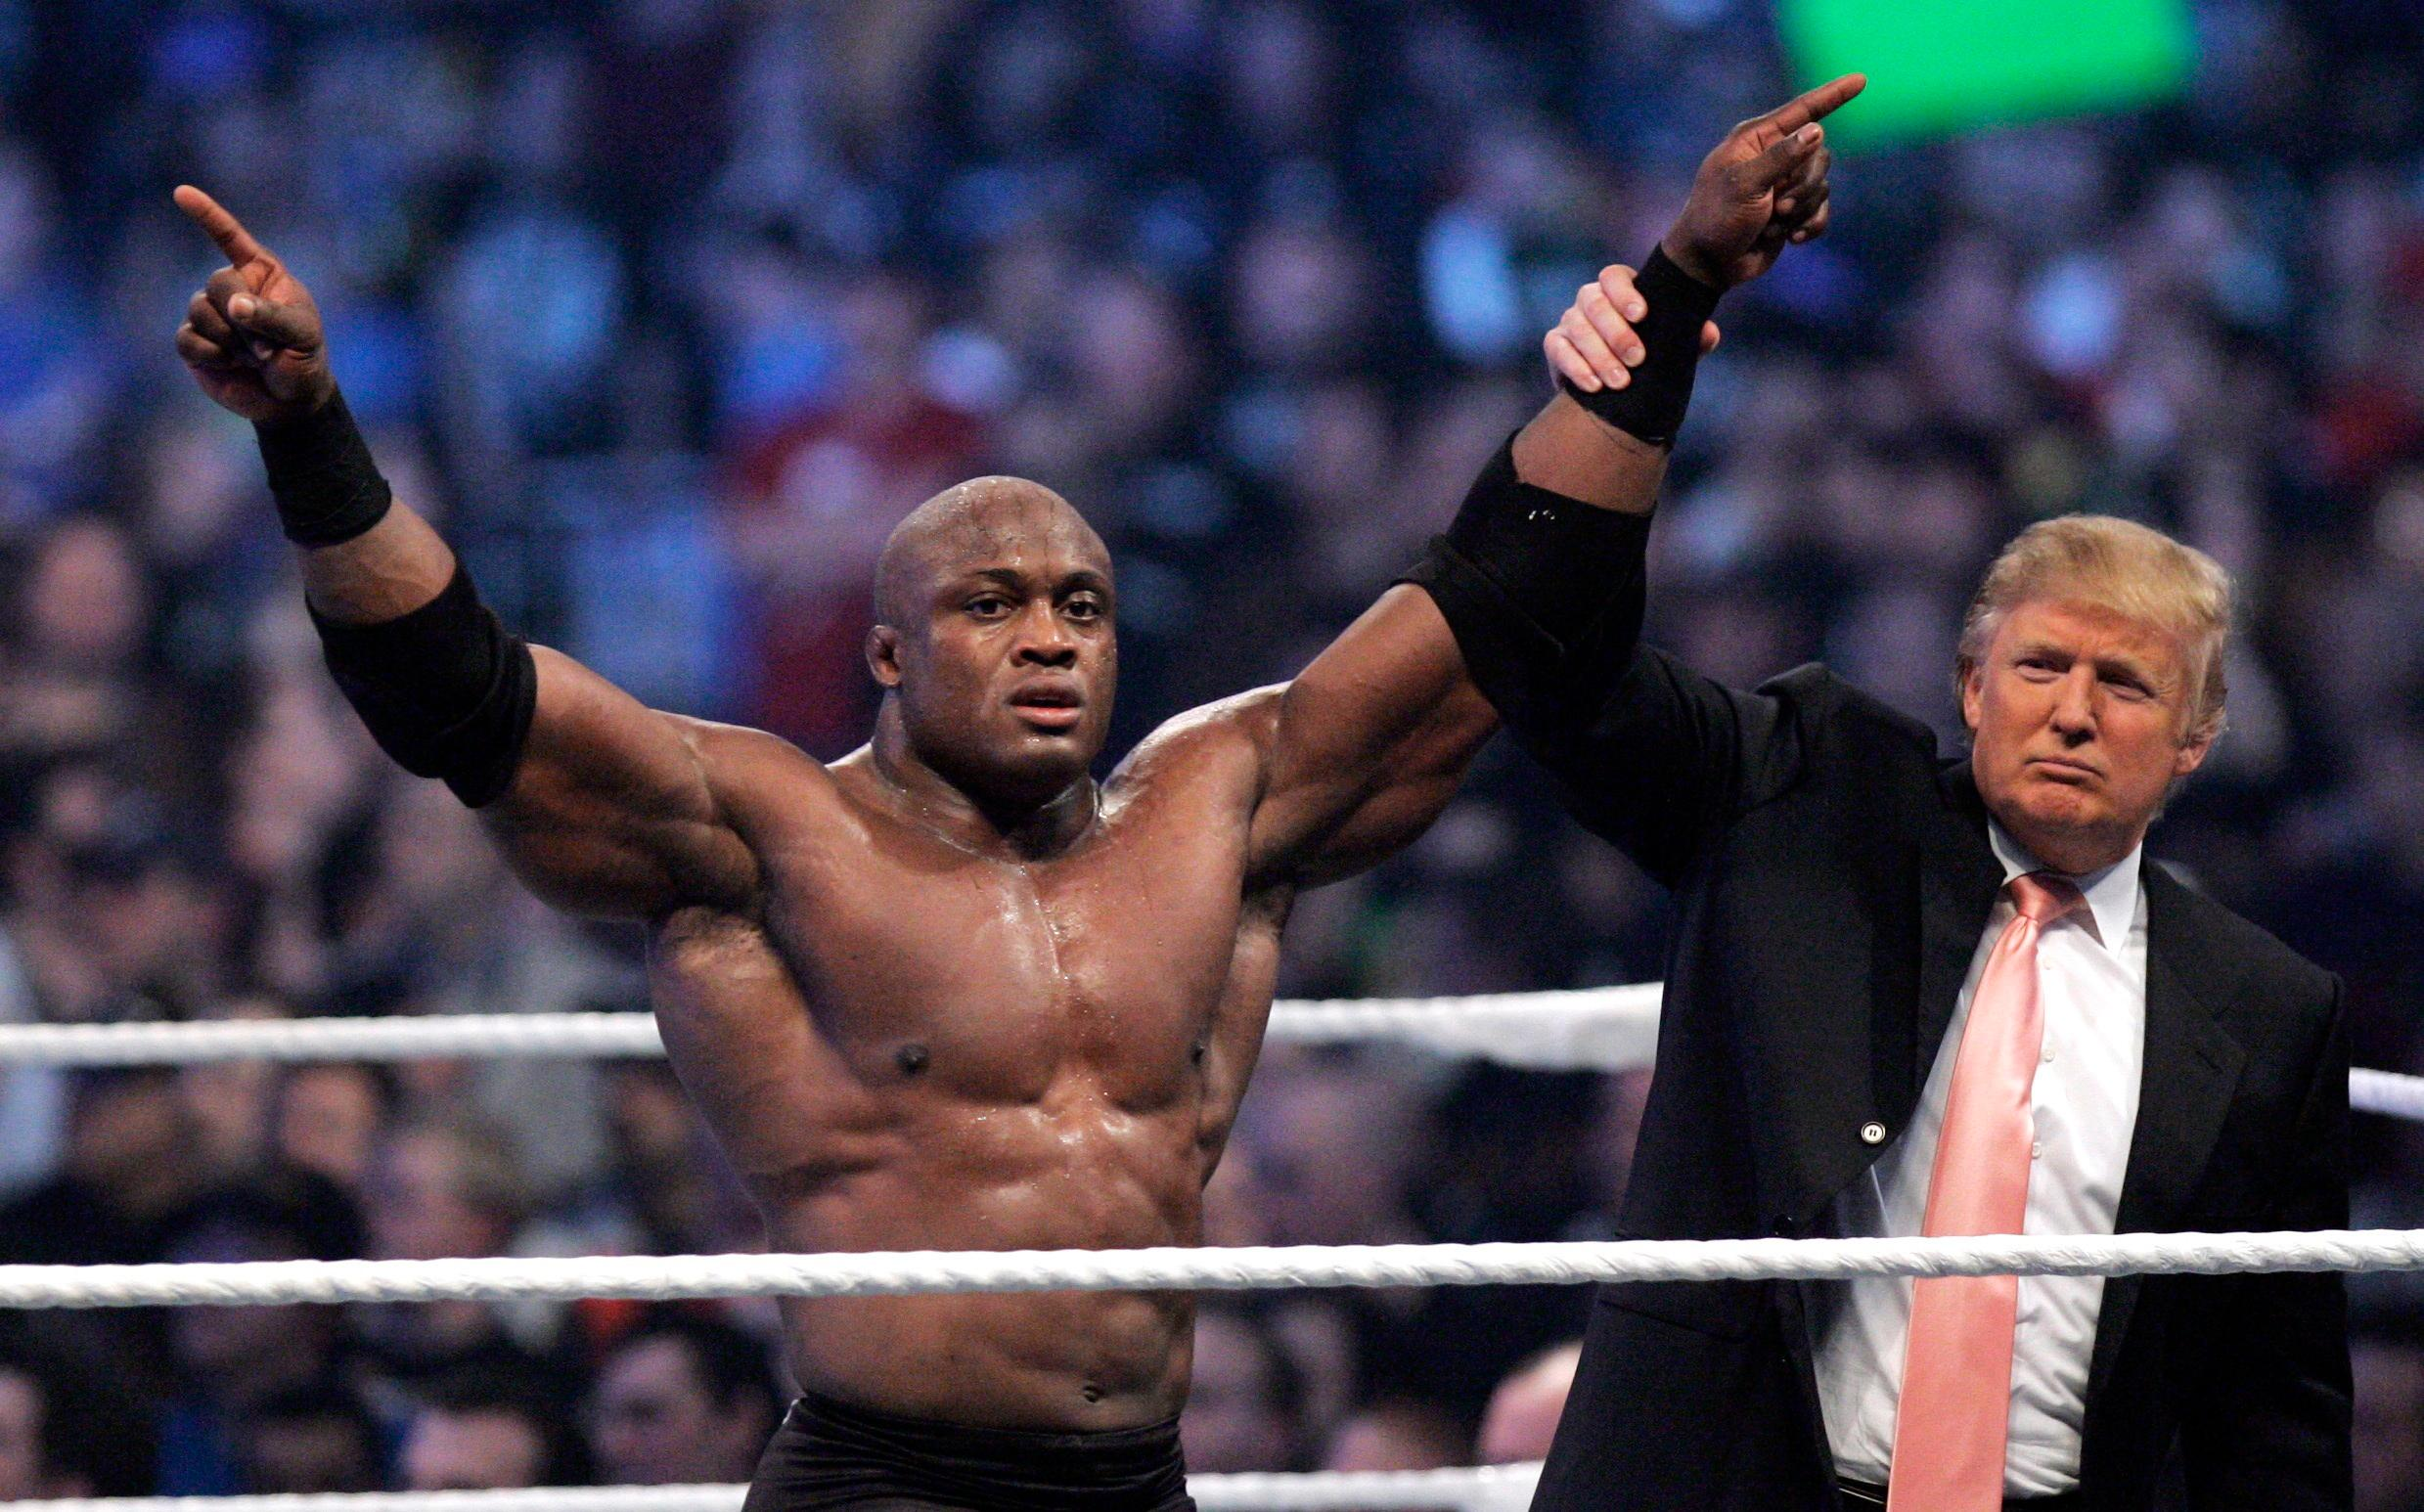 "FILE - In this Sunday, April 1, 2007, file photo, Donald Trump raises the arm of wrestler Bobby Lashley after he defeated Umaga at Wrestlemania 23 at Ford Field in Detroit. Trump body-slammed and then shaved the head of WWE boss Vince McMahon after what was known as the ""Battle of the Billionaires."" Wrestling aficionados say the president has, consciously or not, long borrowed the time-tested tactics of the game to cultivate the ultimate antihero character, a figure who wins at all costs, incites outrage and follows nobody's rules but his own. (AP Photo/Carlos Osorio, File)"